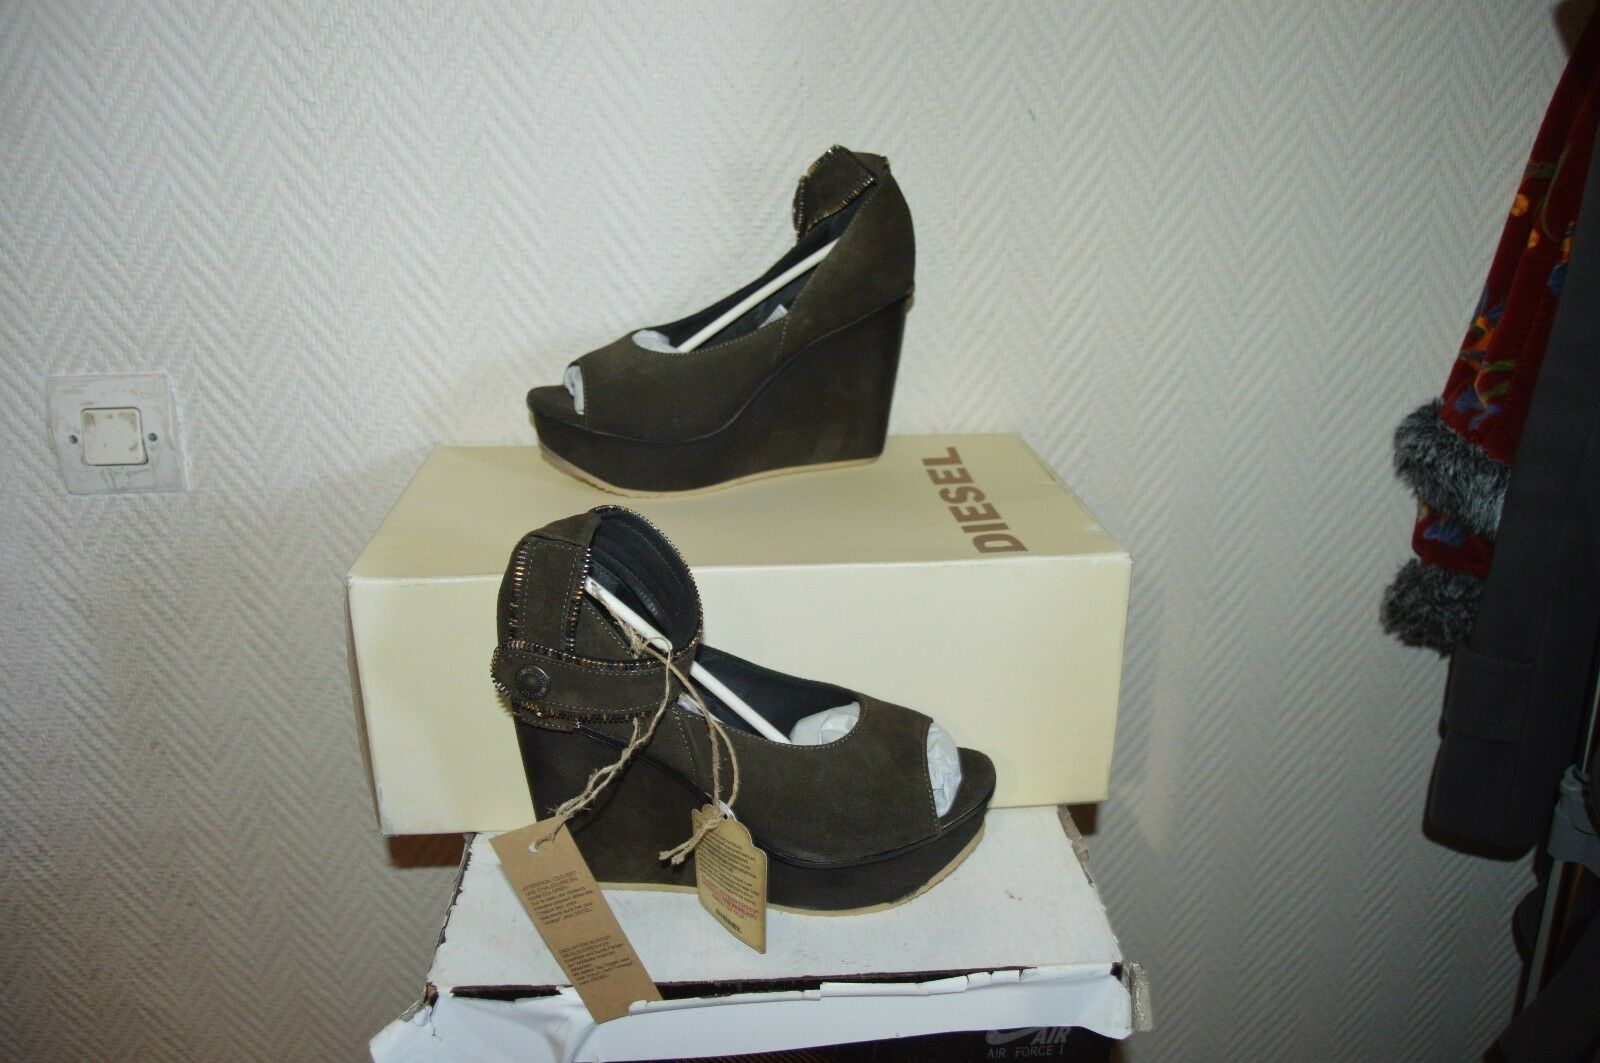 CHAUSSURE SANDALE A TALON COMPENSE DIESEL NEUF TAILLE 37 NEUF DIESEL /SHOES/ZAPATOS/SCARPE 93311e